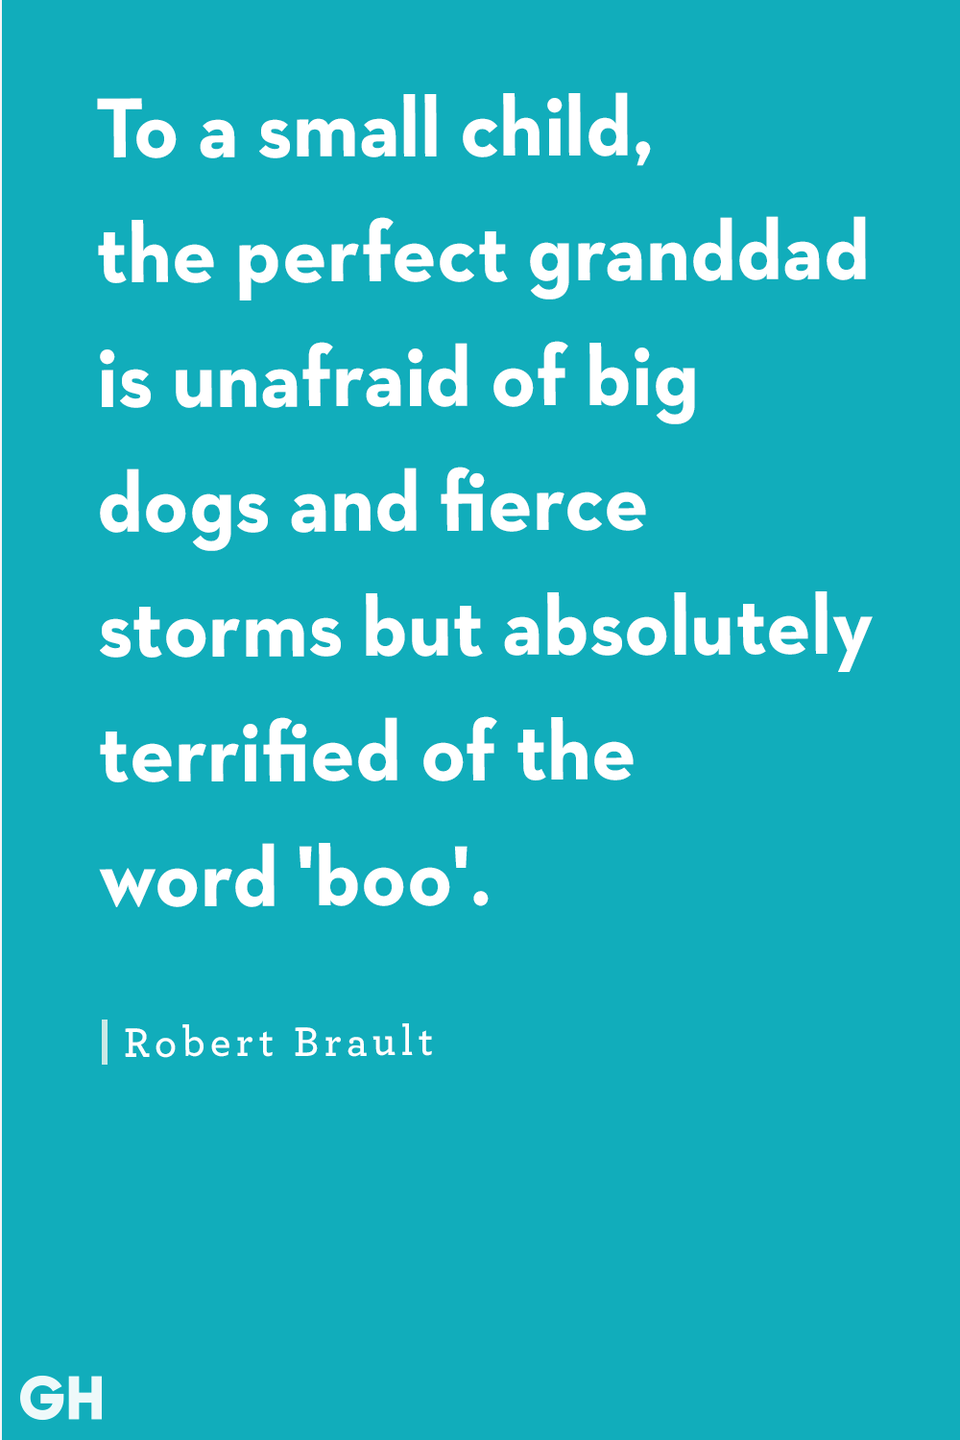 <p>To a small child, the perfect granddad is unafraid of big dogs and fierce storms but absolutely terrified of the word 'boo'.</p>